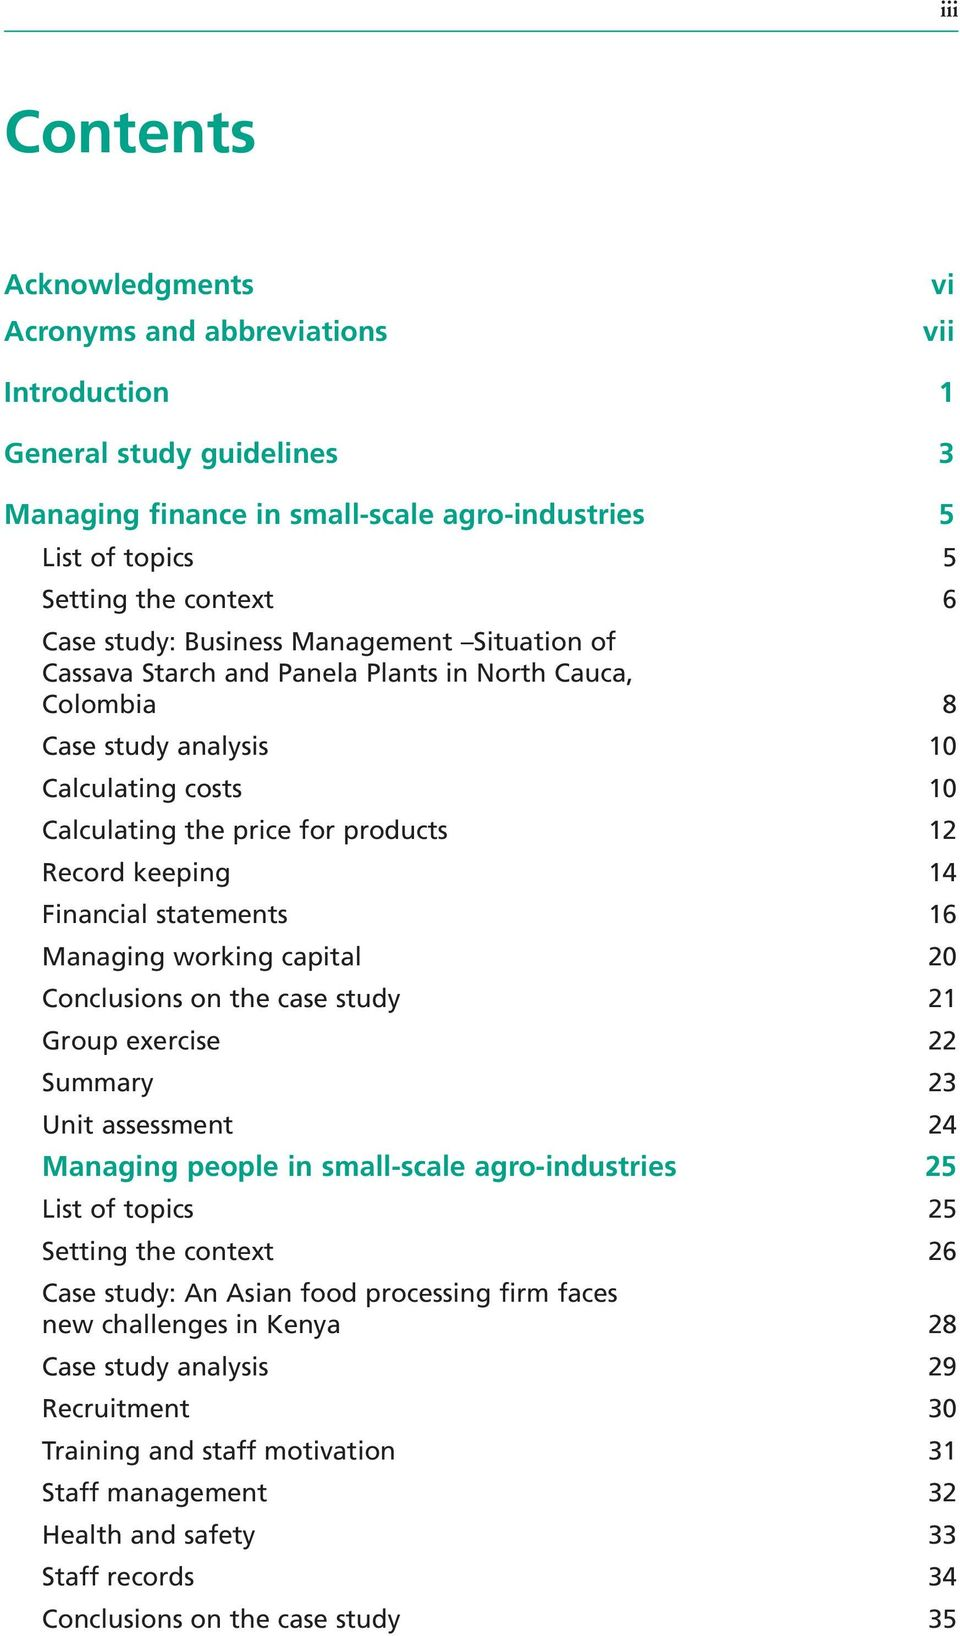 Financial statements 16 Managing working capital 20 Conclusions on the case study 21 Group exercise 22 Summary 23 Unit assessment 24 Managing people in small-scale agro-industries 25 List of topics